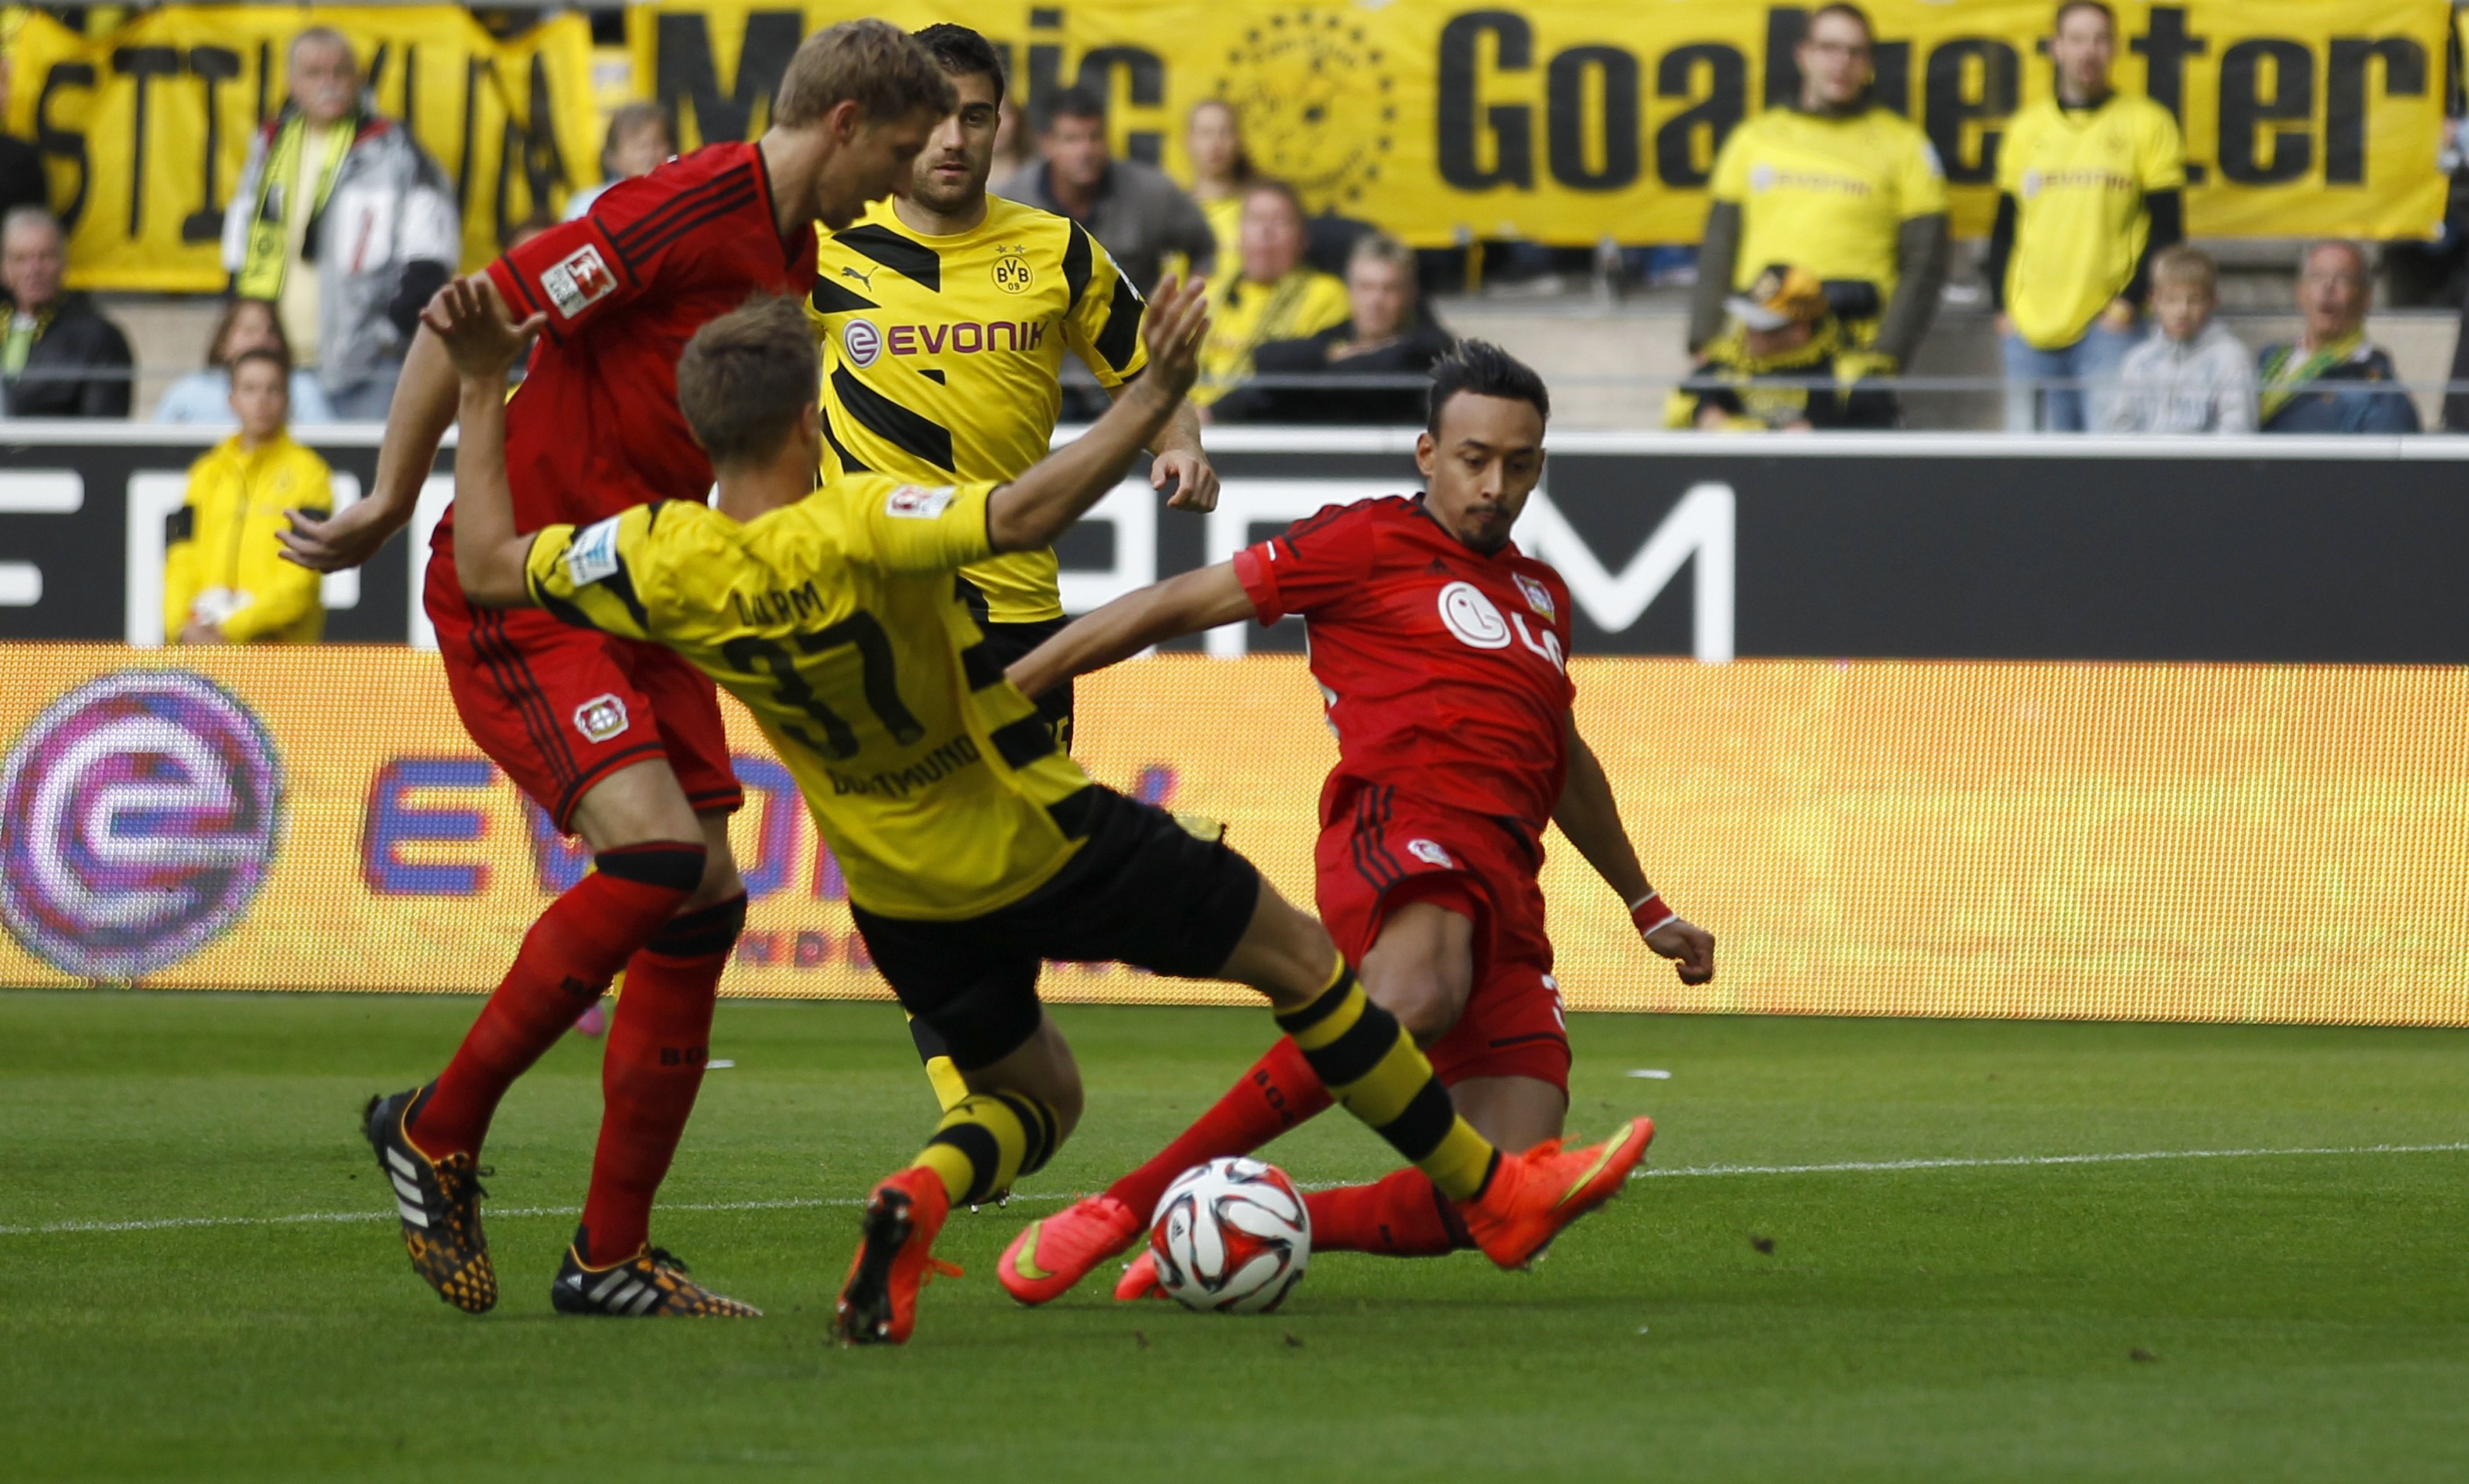 Bayer Leverkusen's Bellerabi scores a goal against Borussia Dortmund during the German first division Bundesliga soccer match in Dortmund